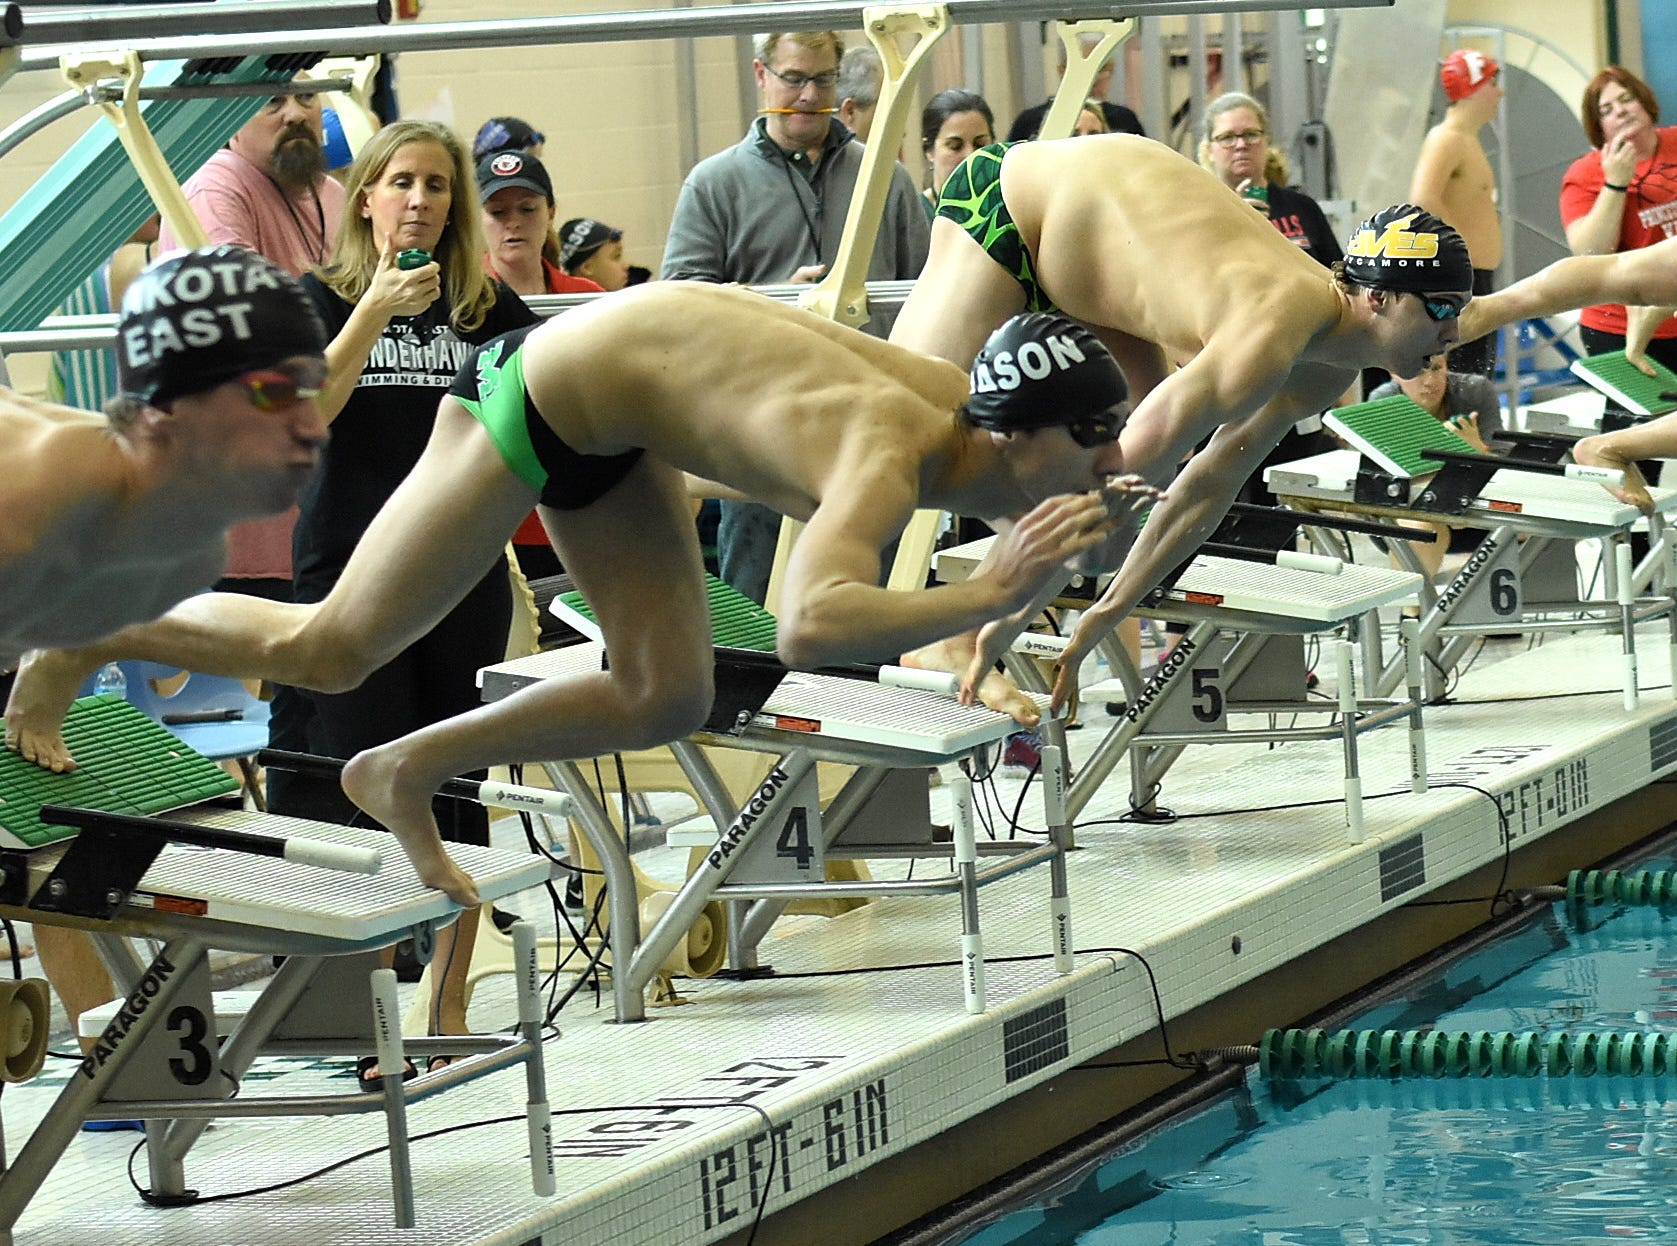 The platforms were loaded with swimmers from Sycamore and Mason for the final heat of the boys 200-yard individual medley at the 2019 Greater Miami Conference swimming championships, Feb. 2, 2019.